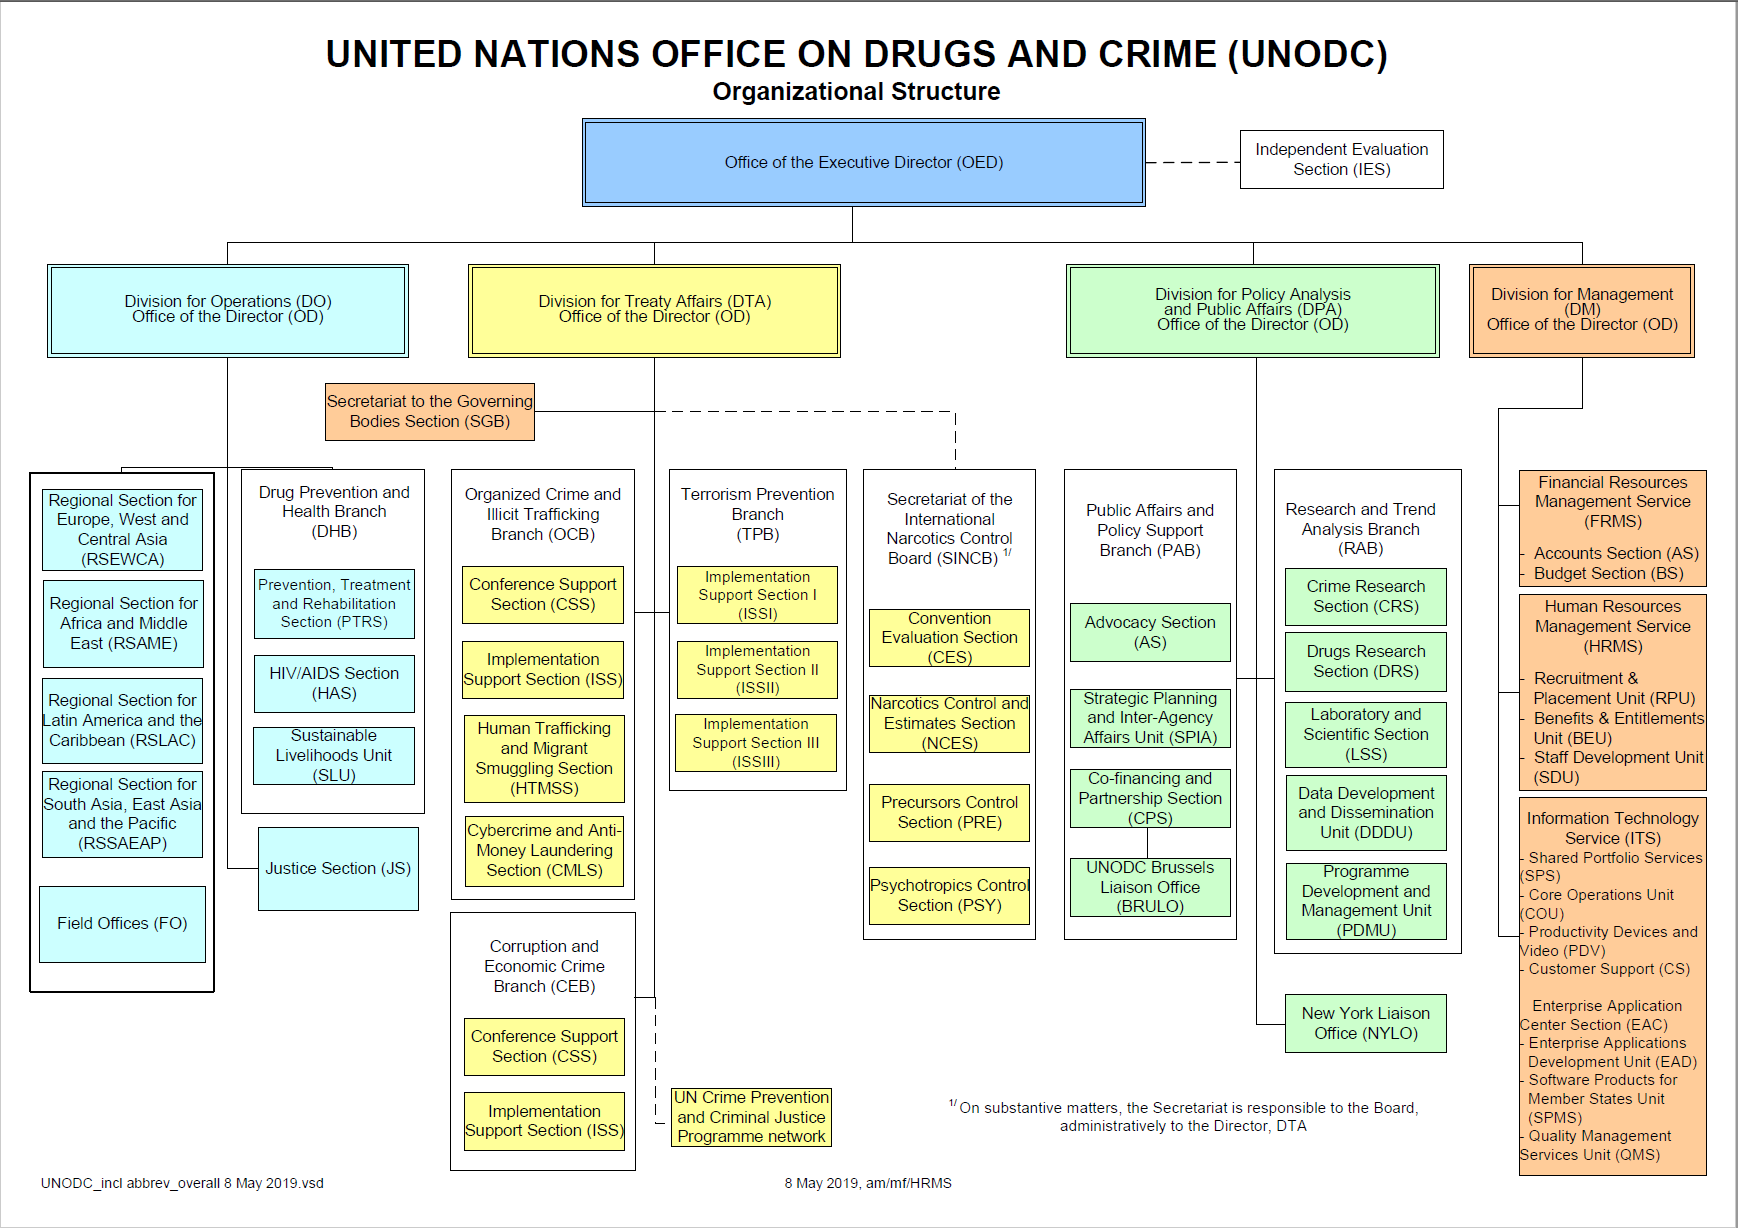 "<p><a href=""/documents/about-unodc/Visio-UNODC_incl_abbrev_overall_8_May_2019.pdf"" rel=""nofollow""><br />Download</a> (pdf)</p>"